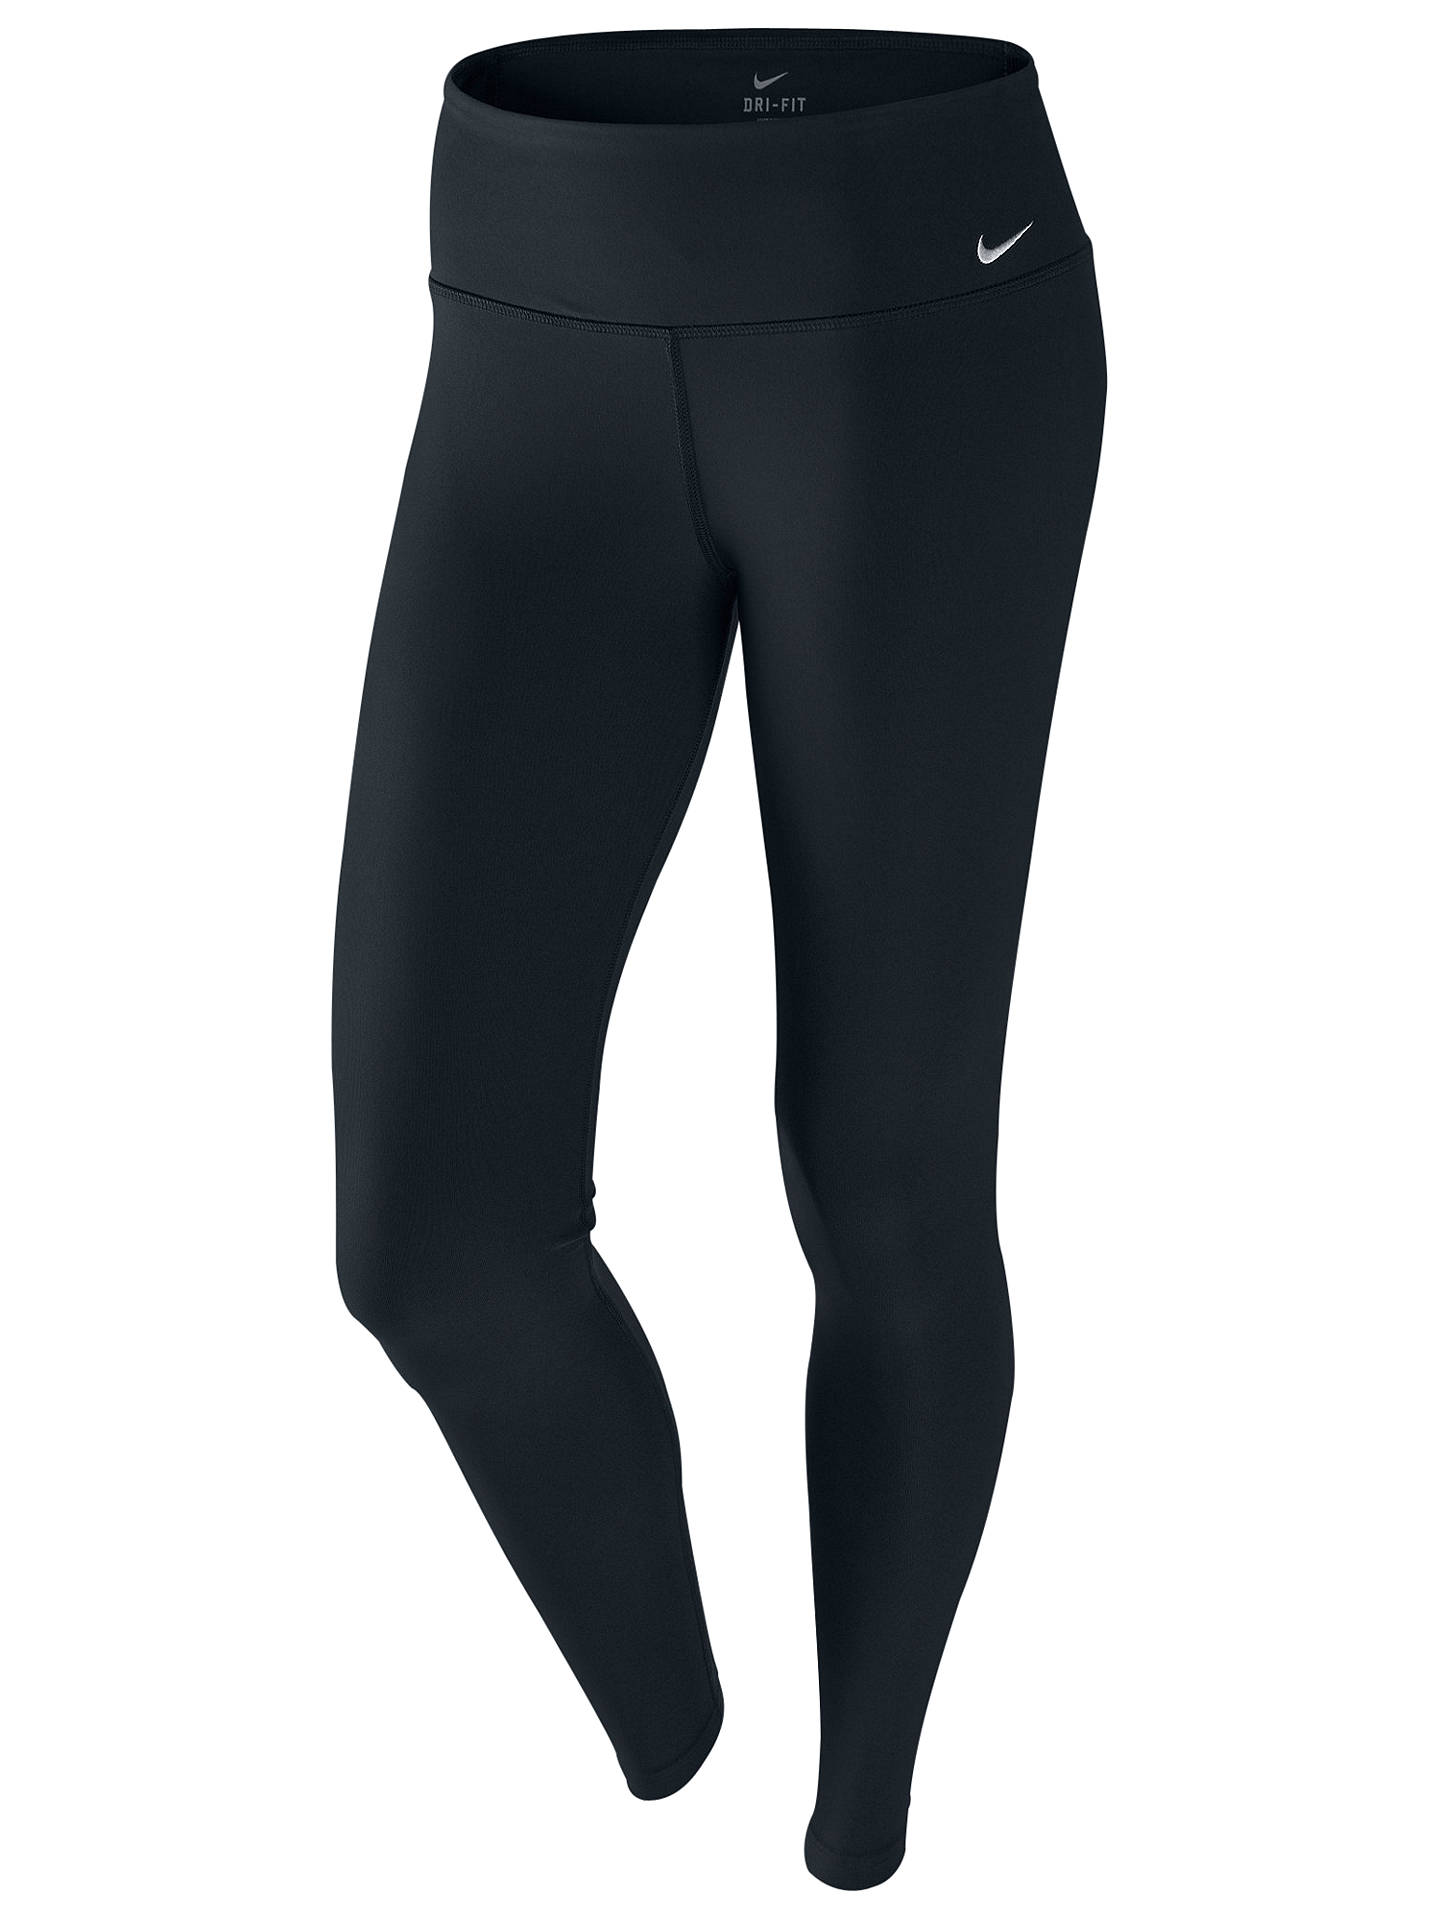 462ecf51 View All Women's Trousers & Leggings. Previous Image Next Image. Buy Nike  Legend 2.0 Poly Running Tights, Black/Cool Grey, S Online at ...